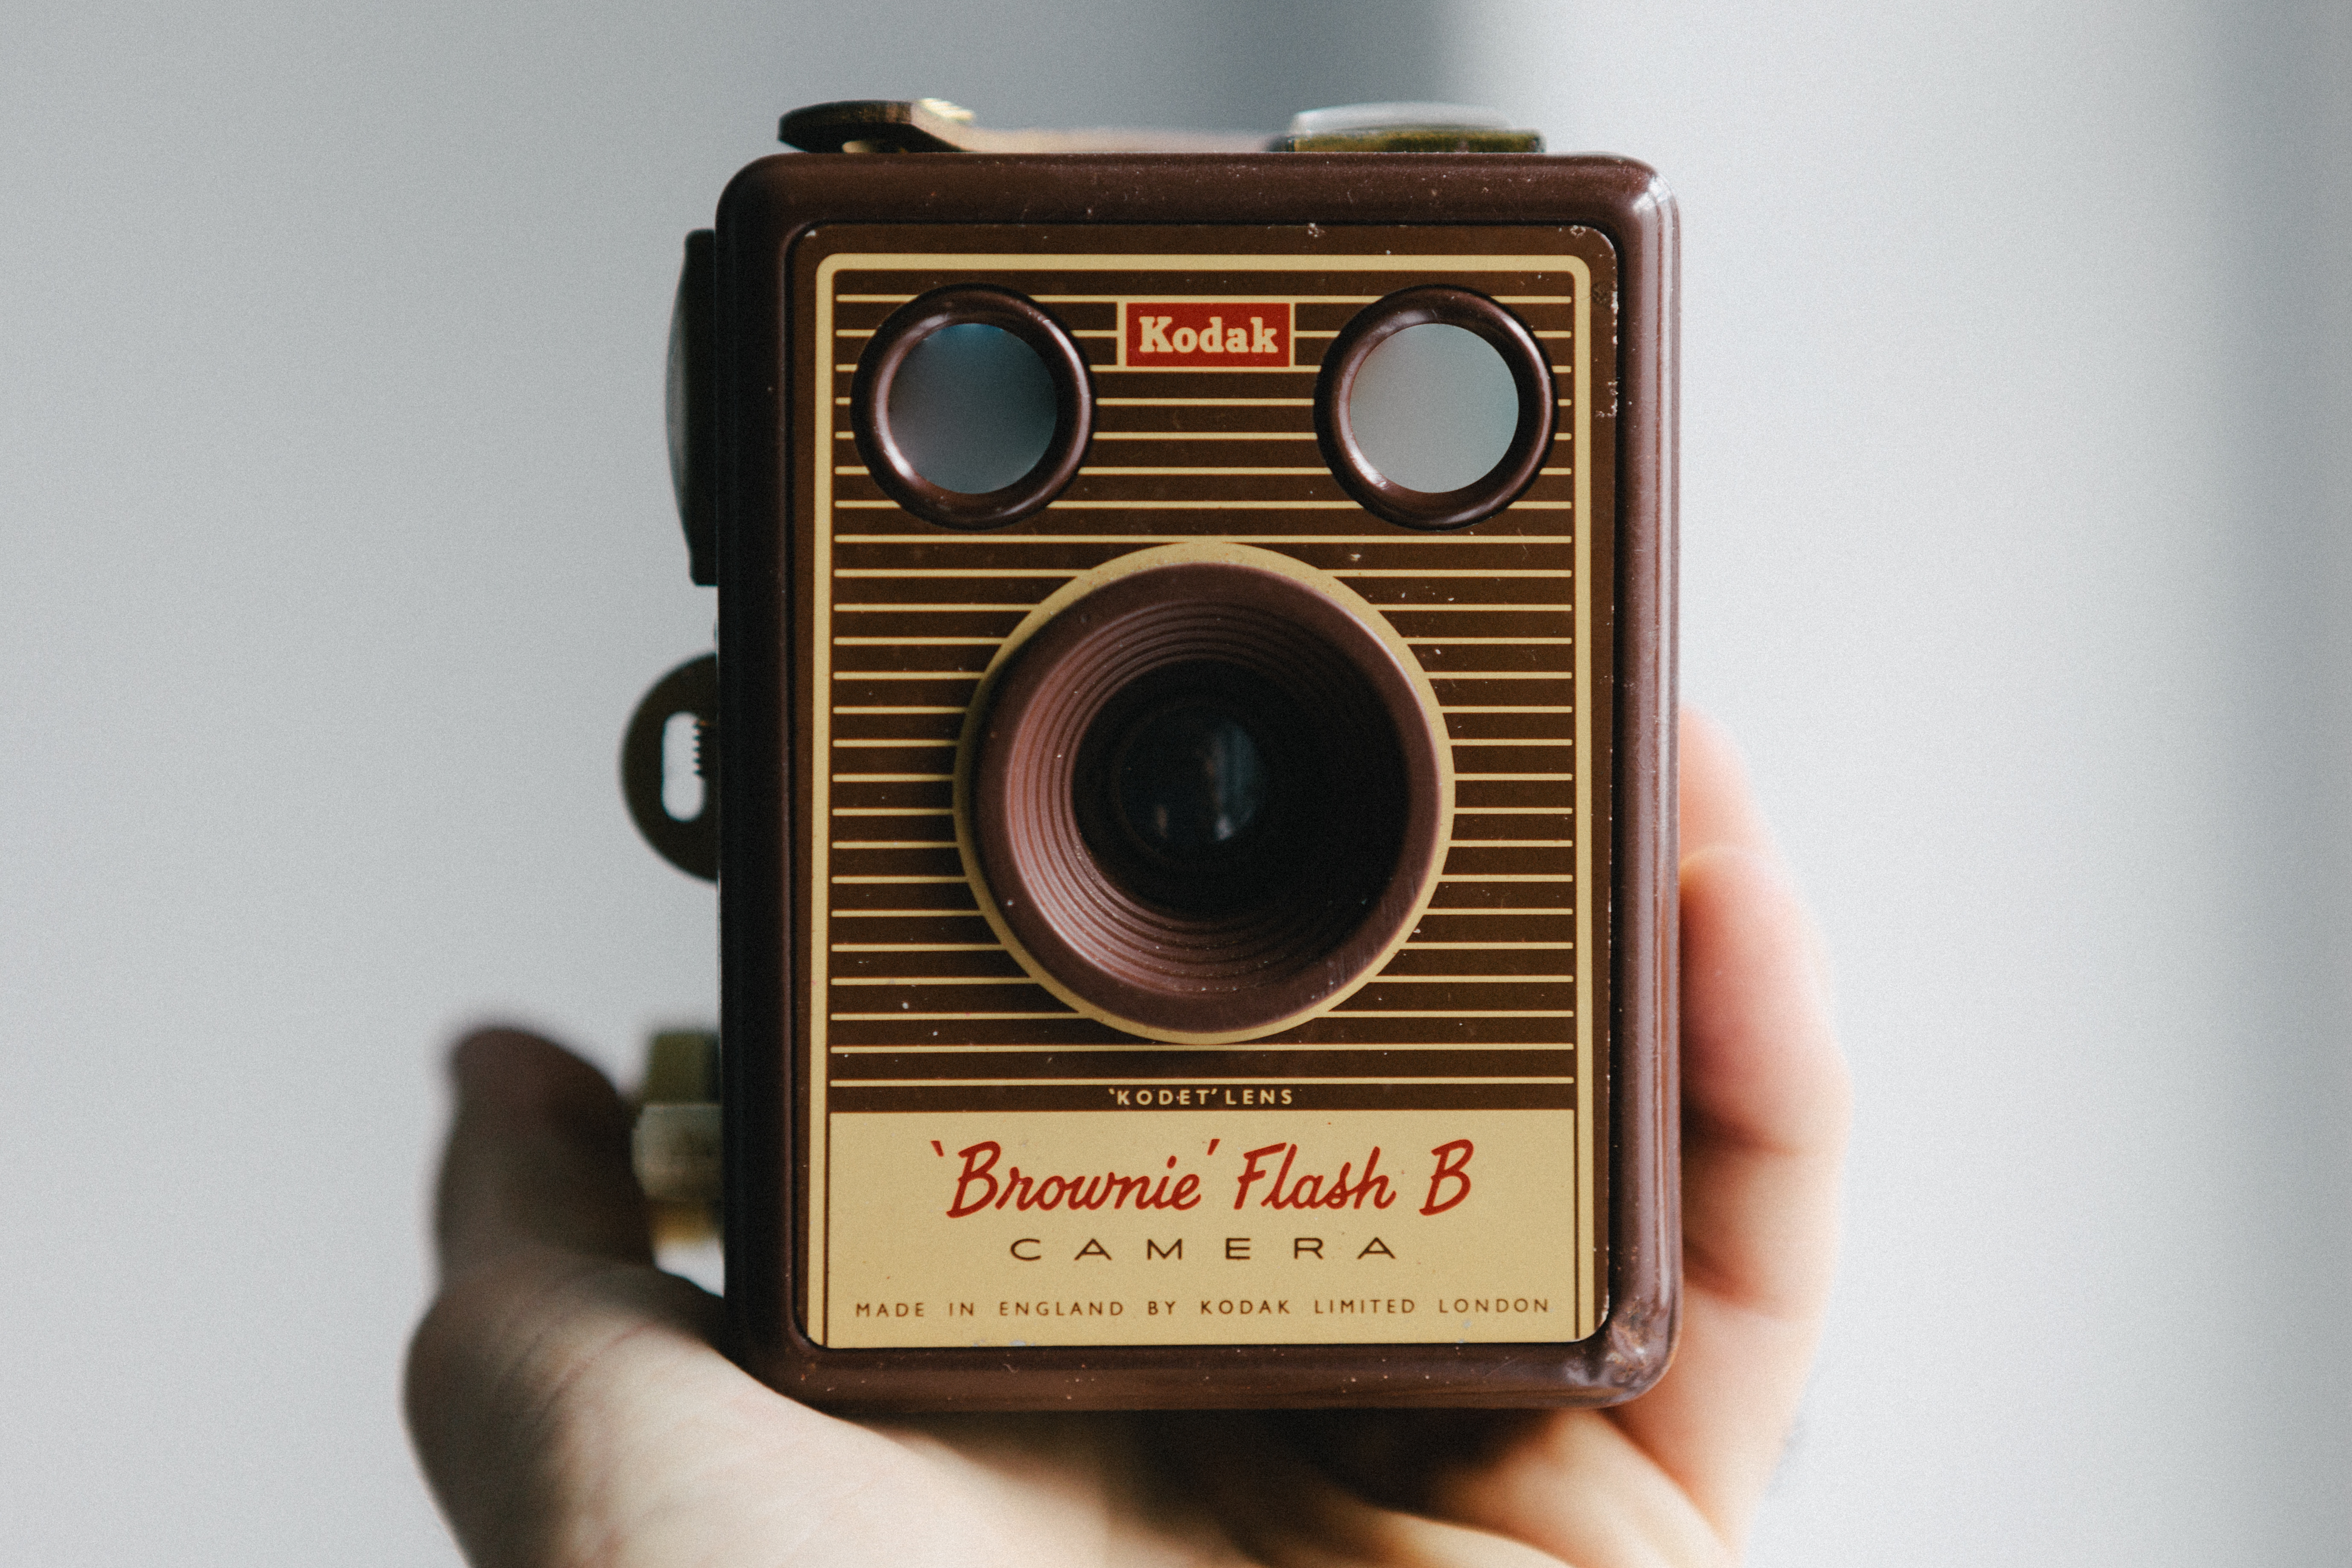 Free stock photos of old camera · Pexels